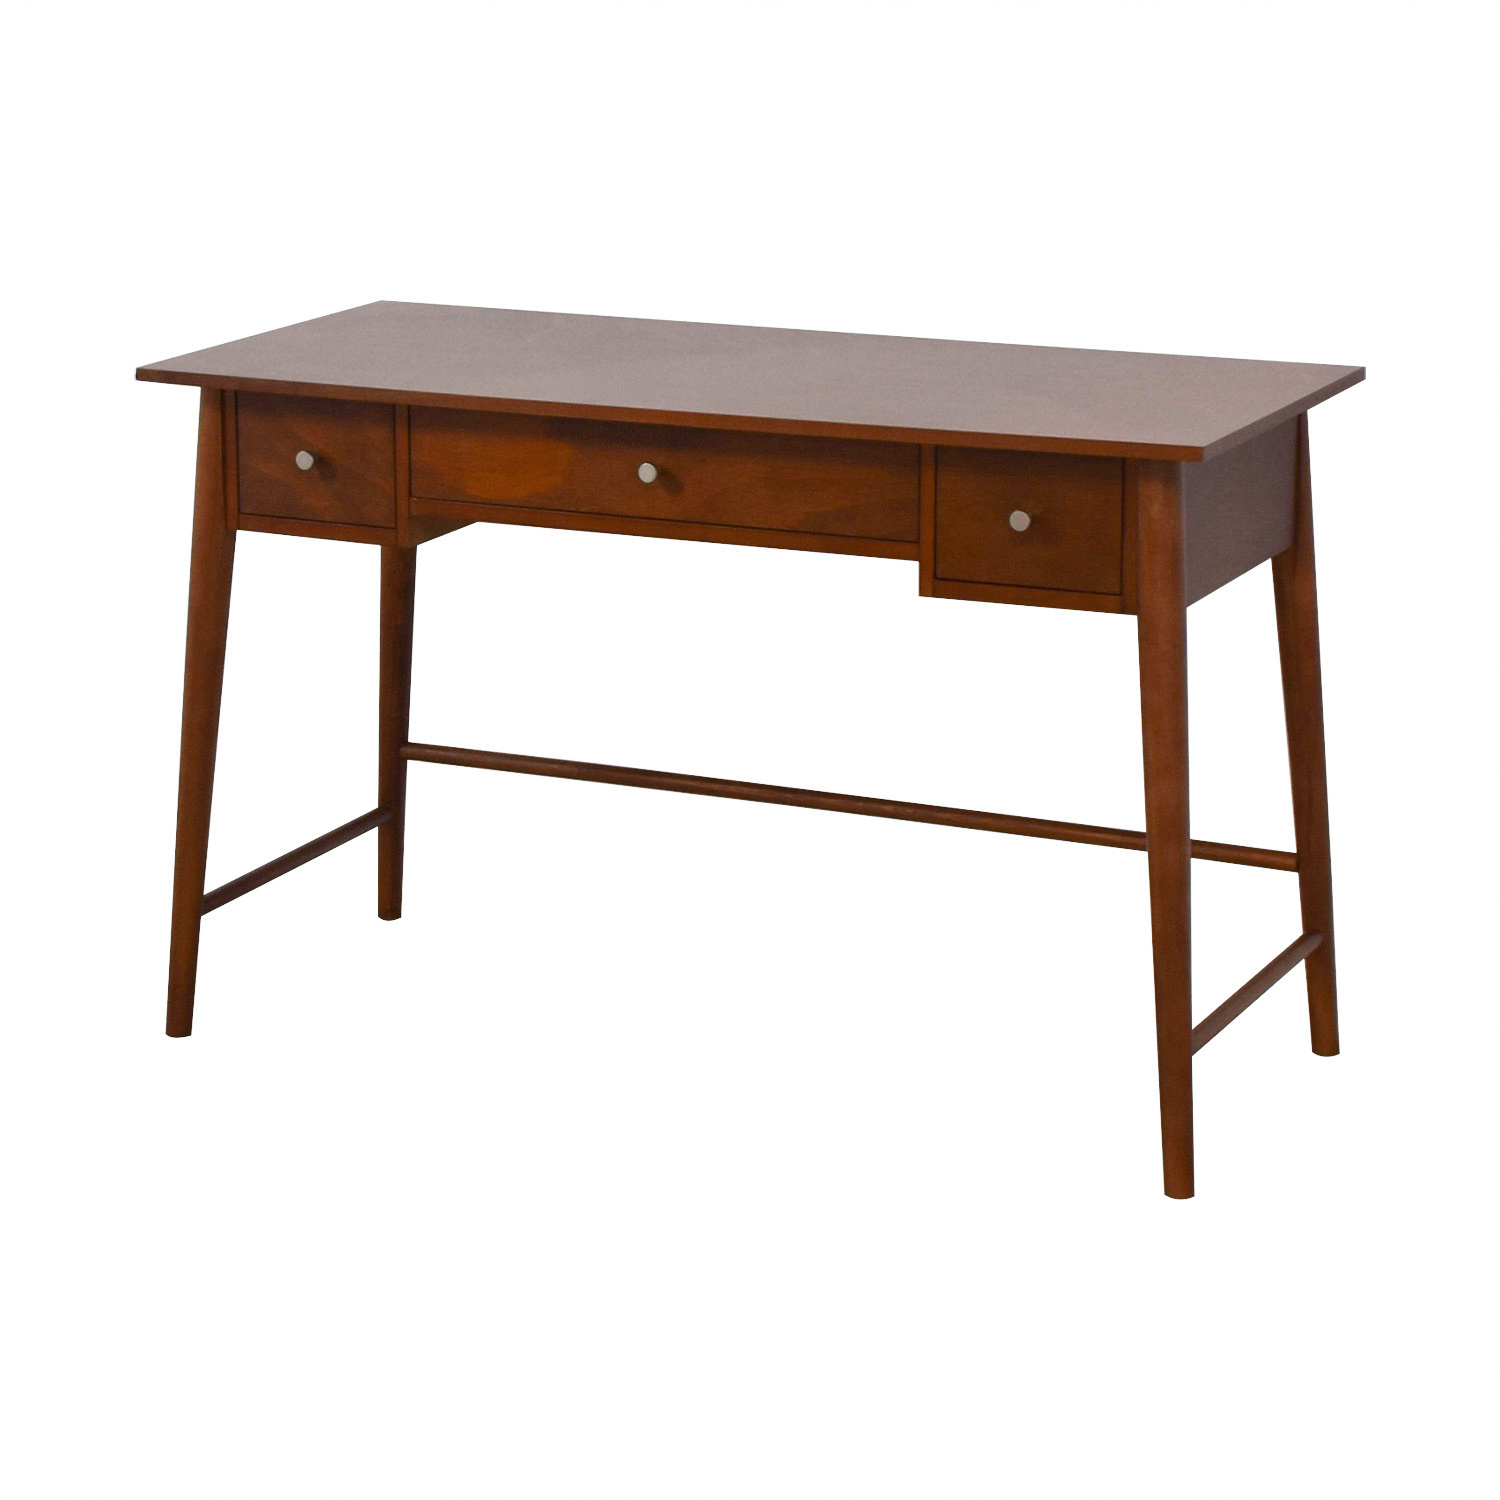 43% OFF - Project 43 Target Project 43 Mid Century Desk / Tables